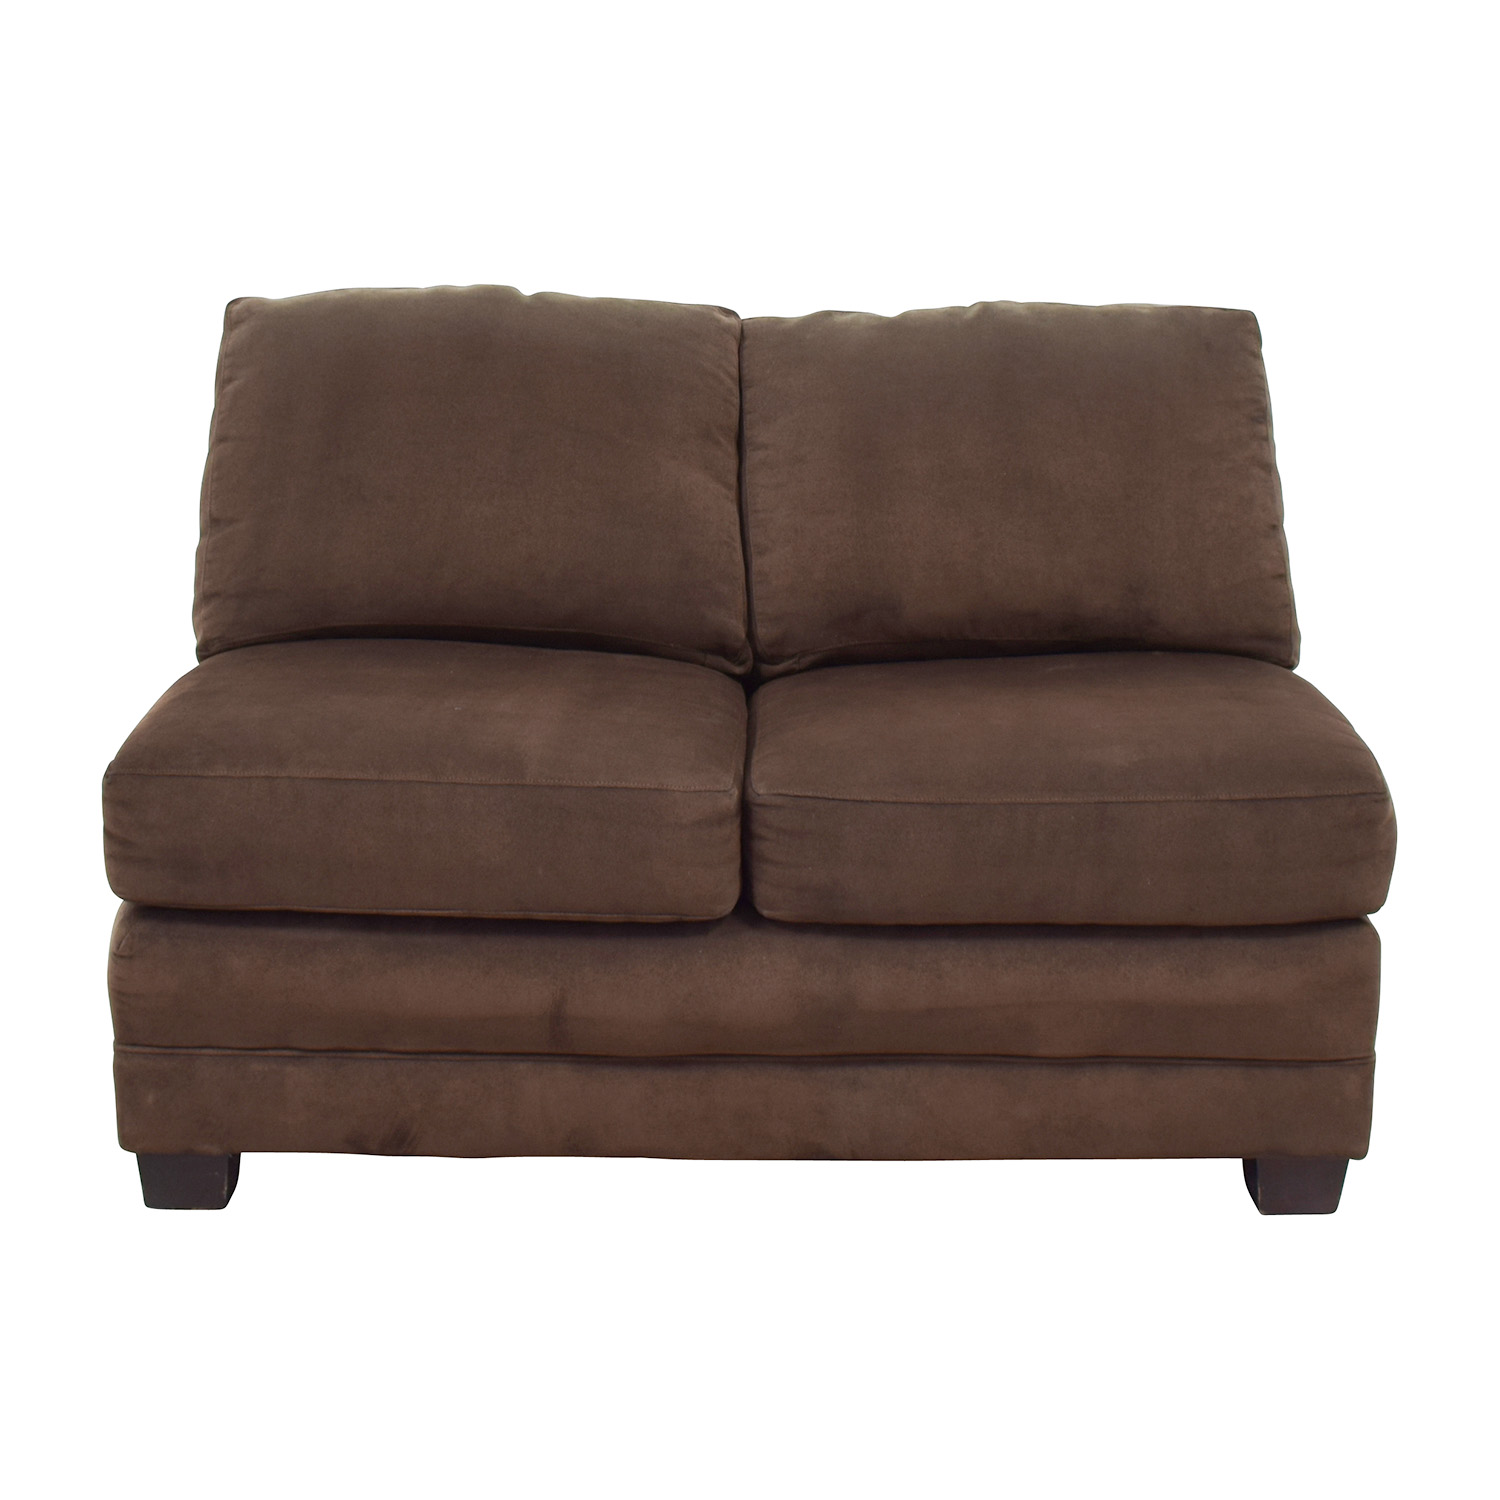 Crate and Barrel Crate and Barrel Brown Armless Loveseat on sale